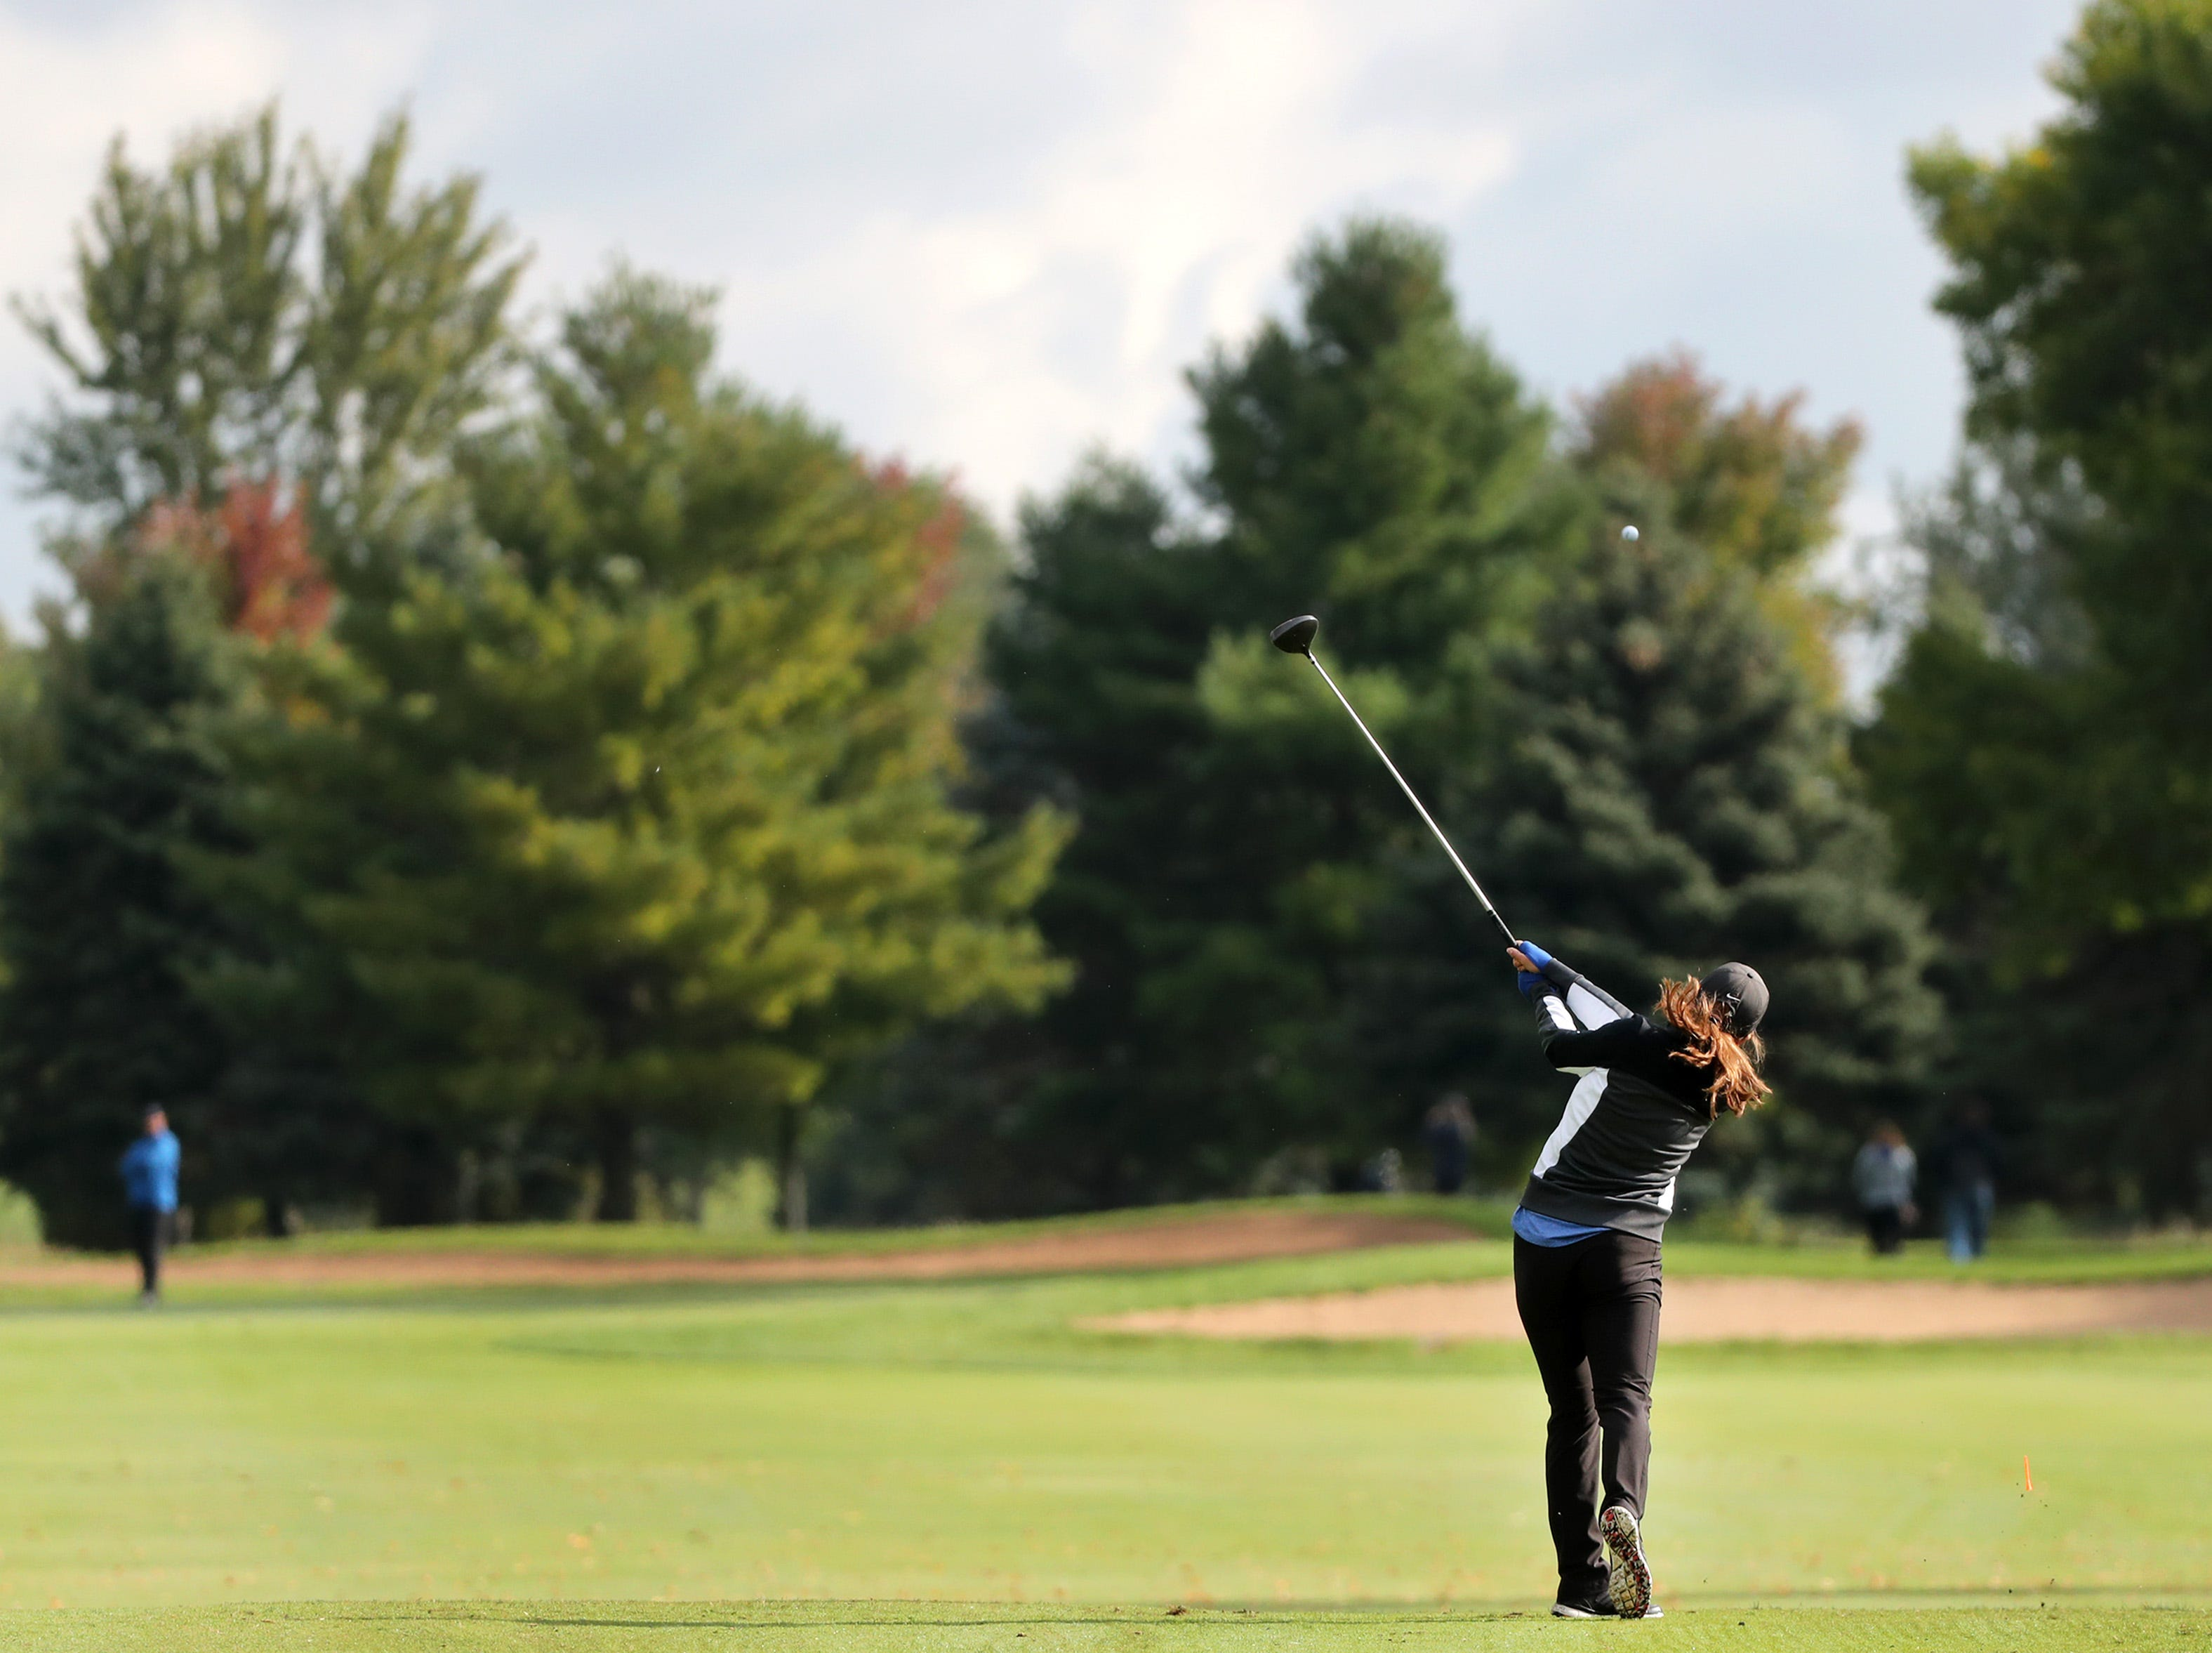 Wrightstown's Carley Ott tees off during the WIAA Division 2 Regional Girls Golf Tournament Wednesday, Sept. 26, 2018, at Mid Vallee Golf Course in De Pere, Wis.Danny Damiani/USA TODAY NETWORK-Wisconsin